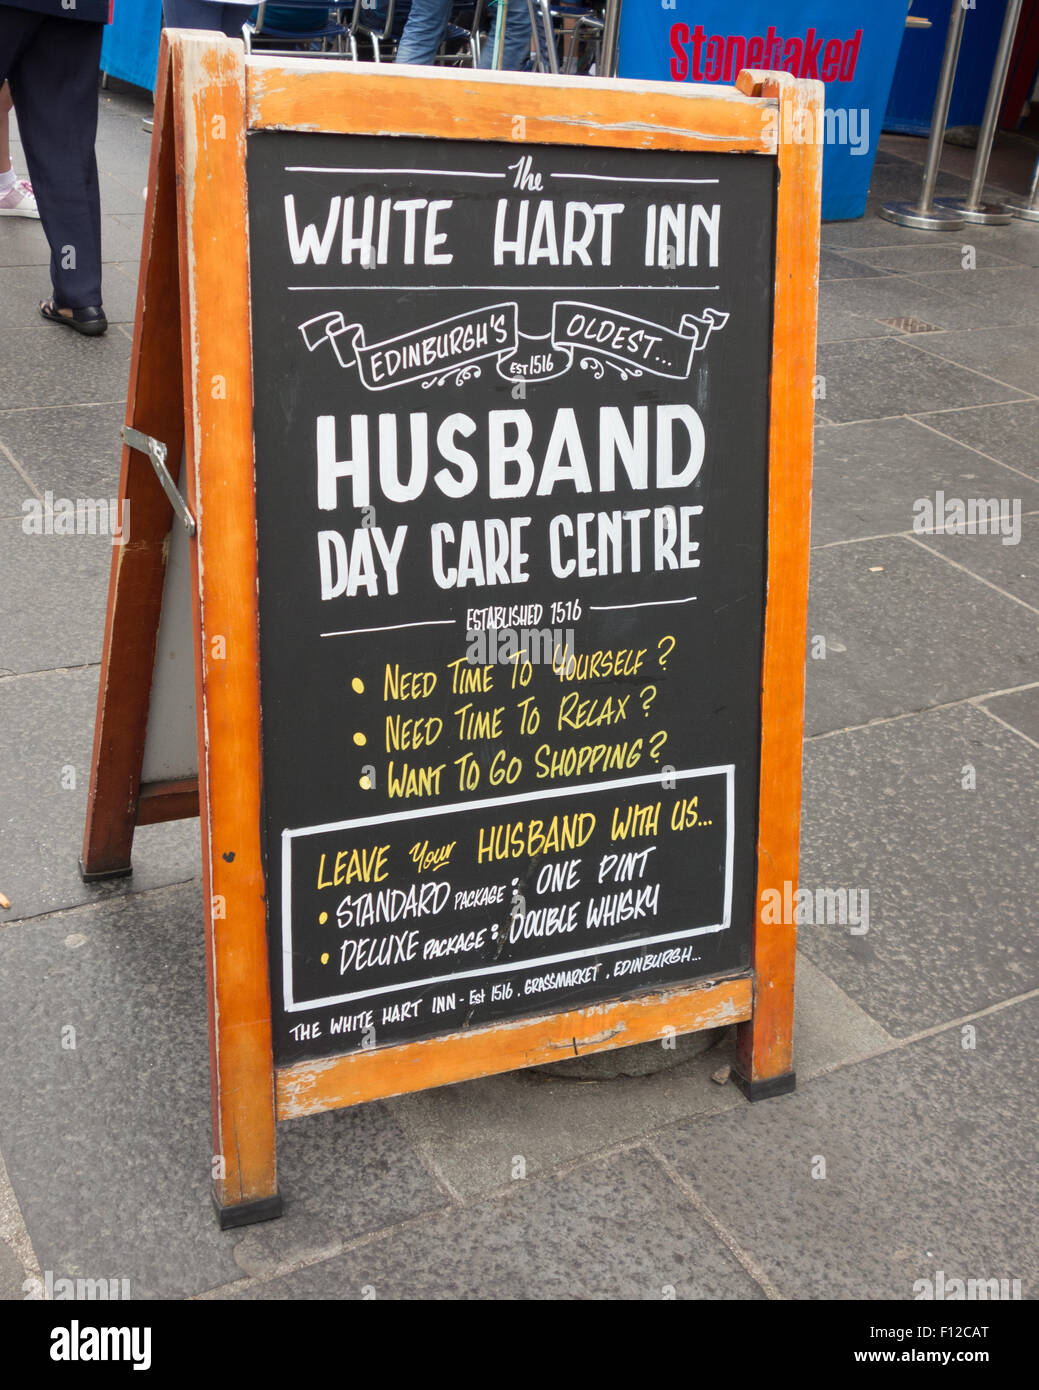 humorous sign outside the White Hart Inn in the historic Grassmarket area of Edinburgh, Scotland - Stock Image